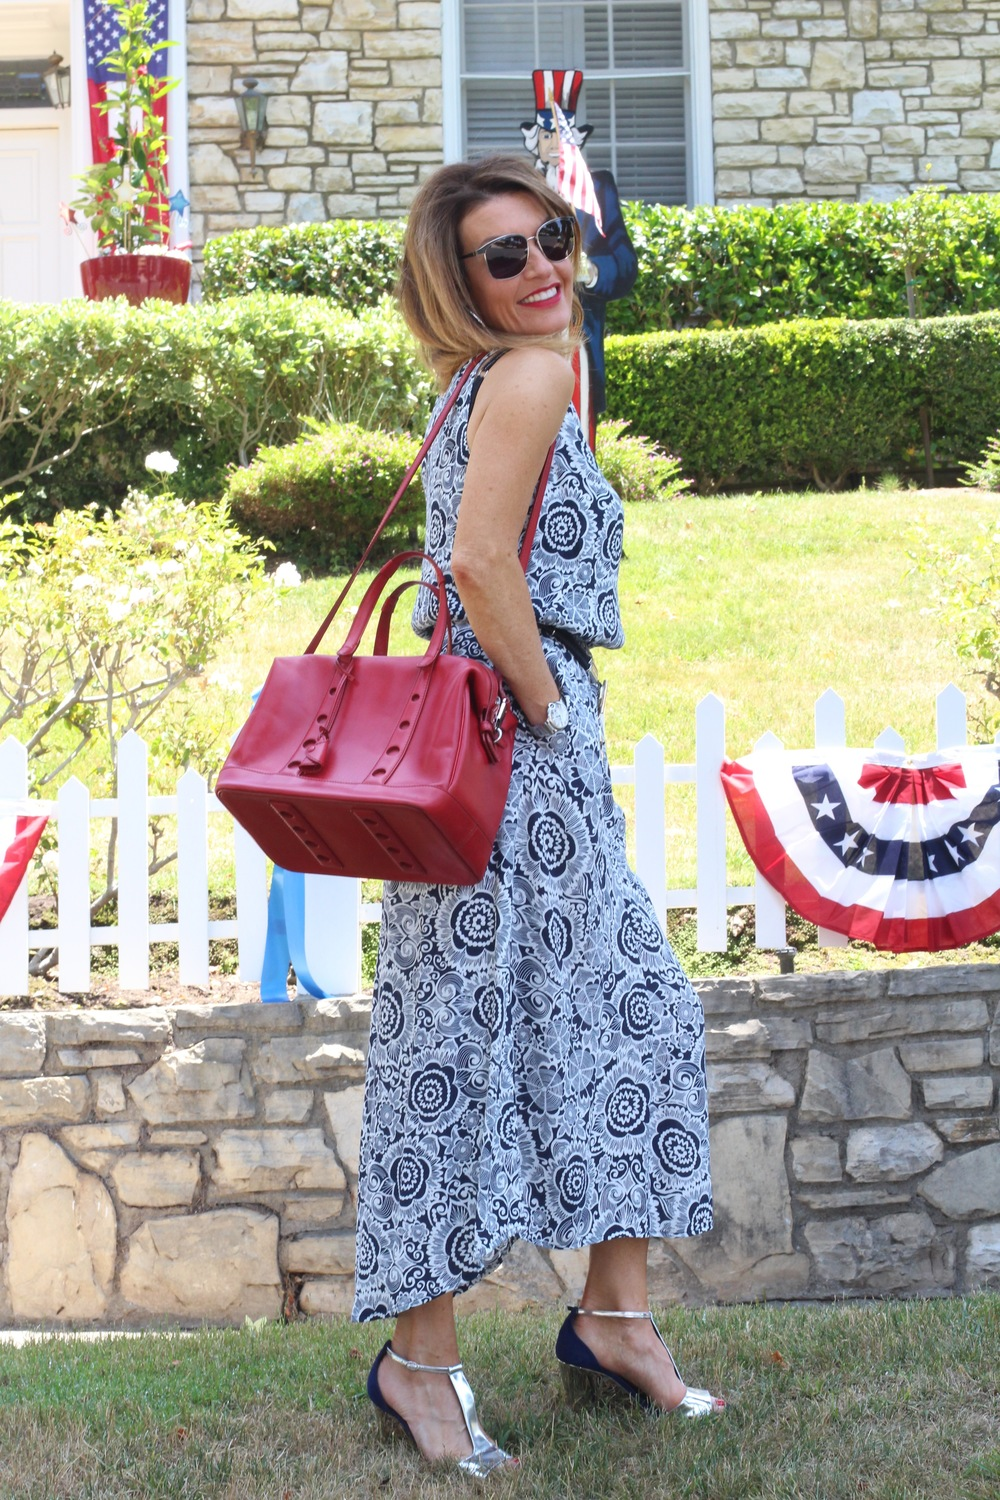 CAbi Twirl Dress ,  Worth New York Belt , Myriam Schafer Handbag, Rupert Sanderson Sandals, on sale  here ,  John Hardy  Earrings and Bracelets, Cartier Watch, Oliver Peoples Sunglasses,  Mac  Ruby Woo Lip Color,  Essie Really Red Nail Polish .